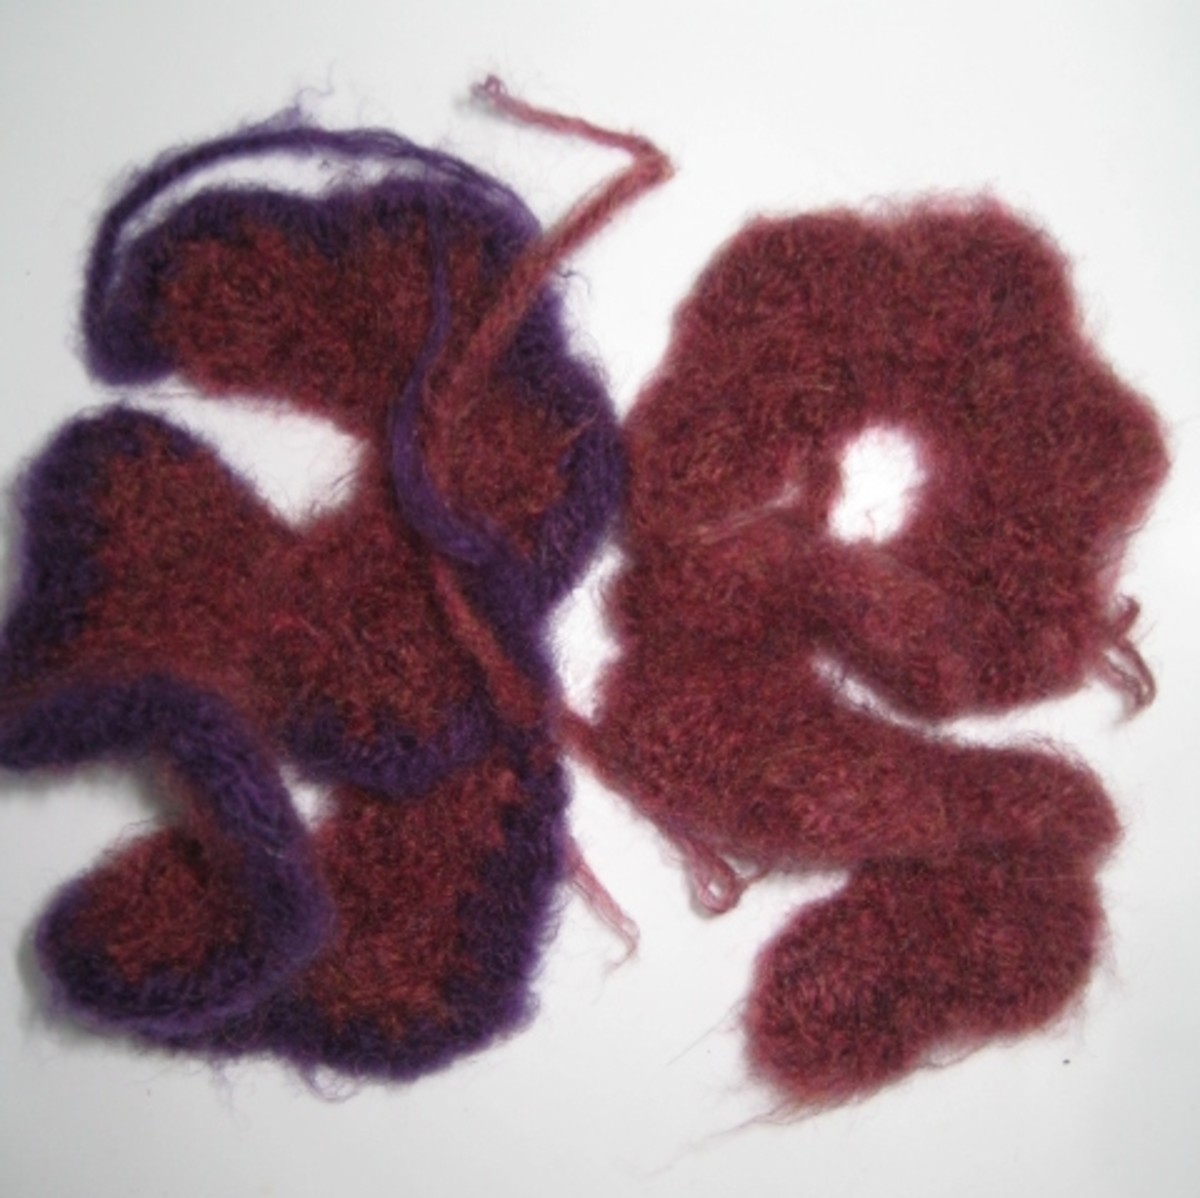 Felted Flower after Felting - With and without 4th row